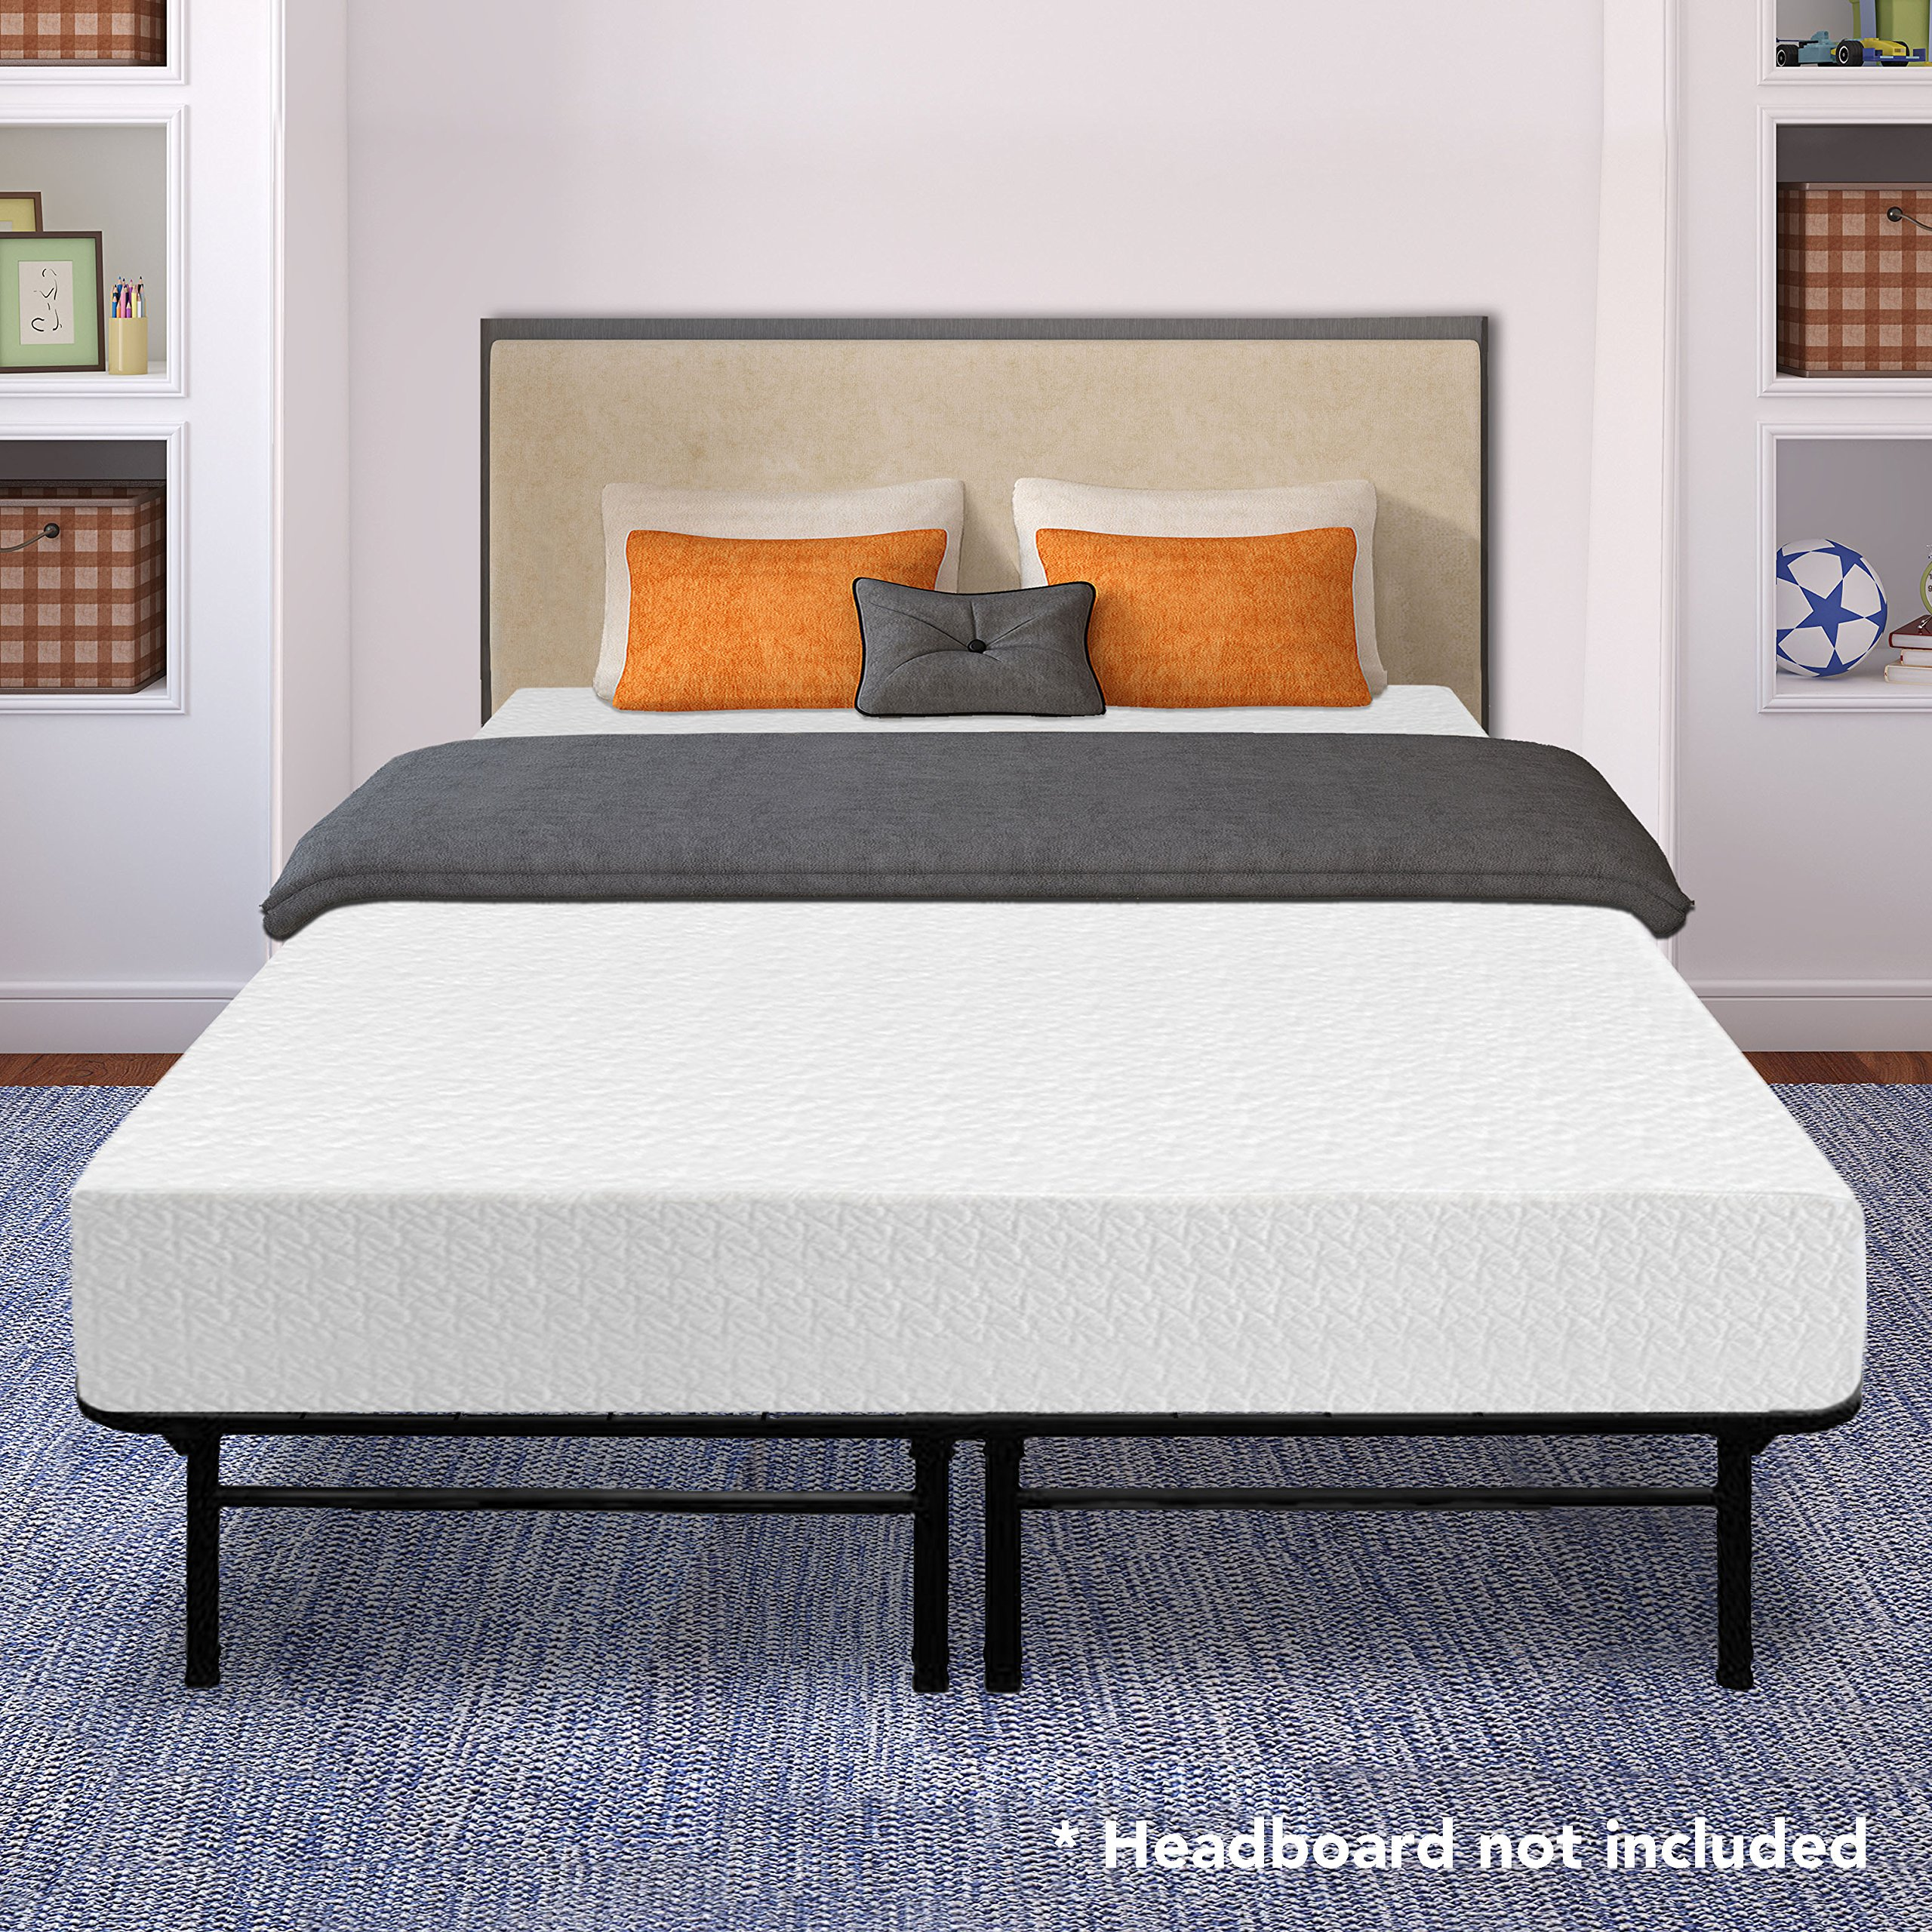 Best Price Mattress 10'' Memory Foam Mattress and 14'' Premium Steel Bed Frame/Foundation Set, King